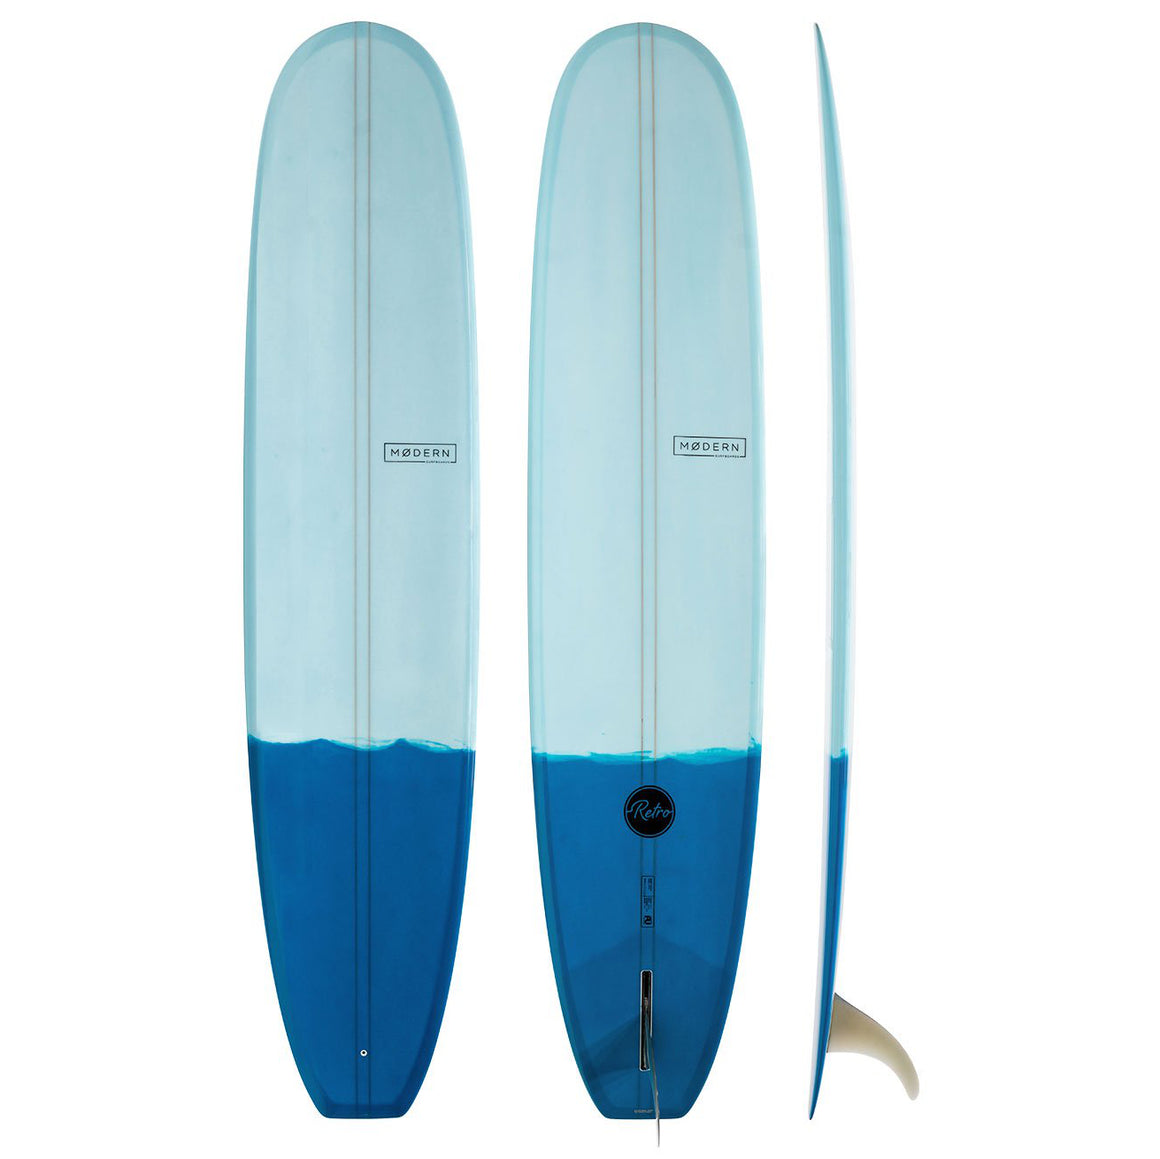 Modern Longboard - 9'6 Retro PU Two Tone Blue